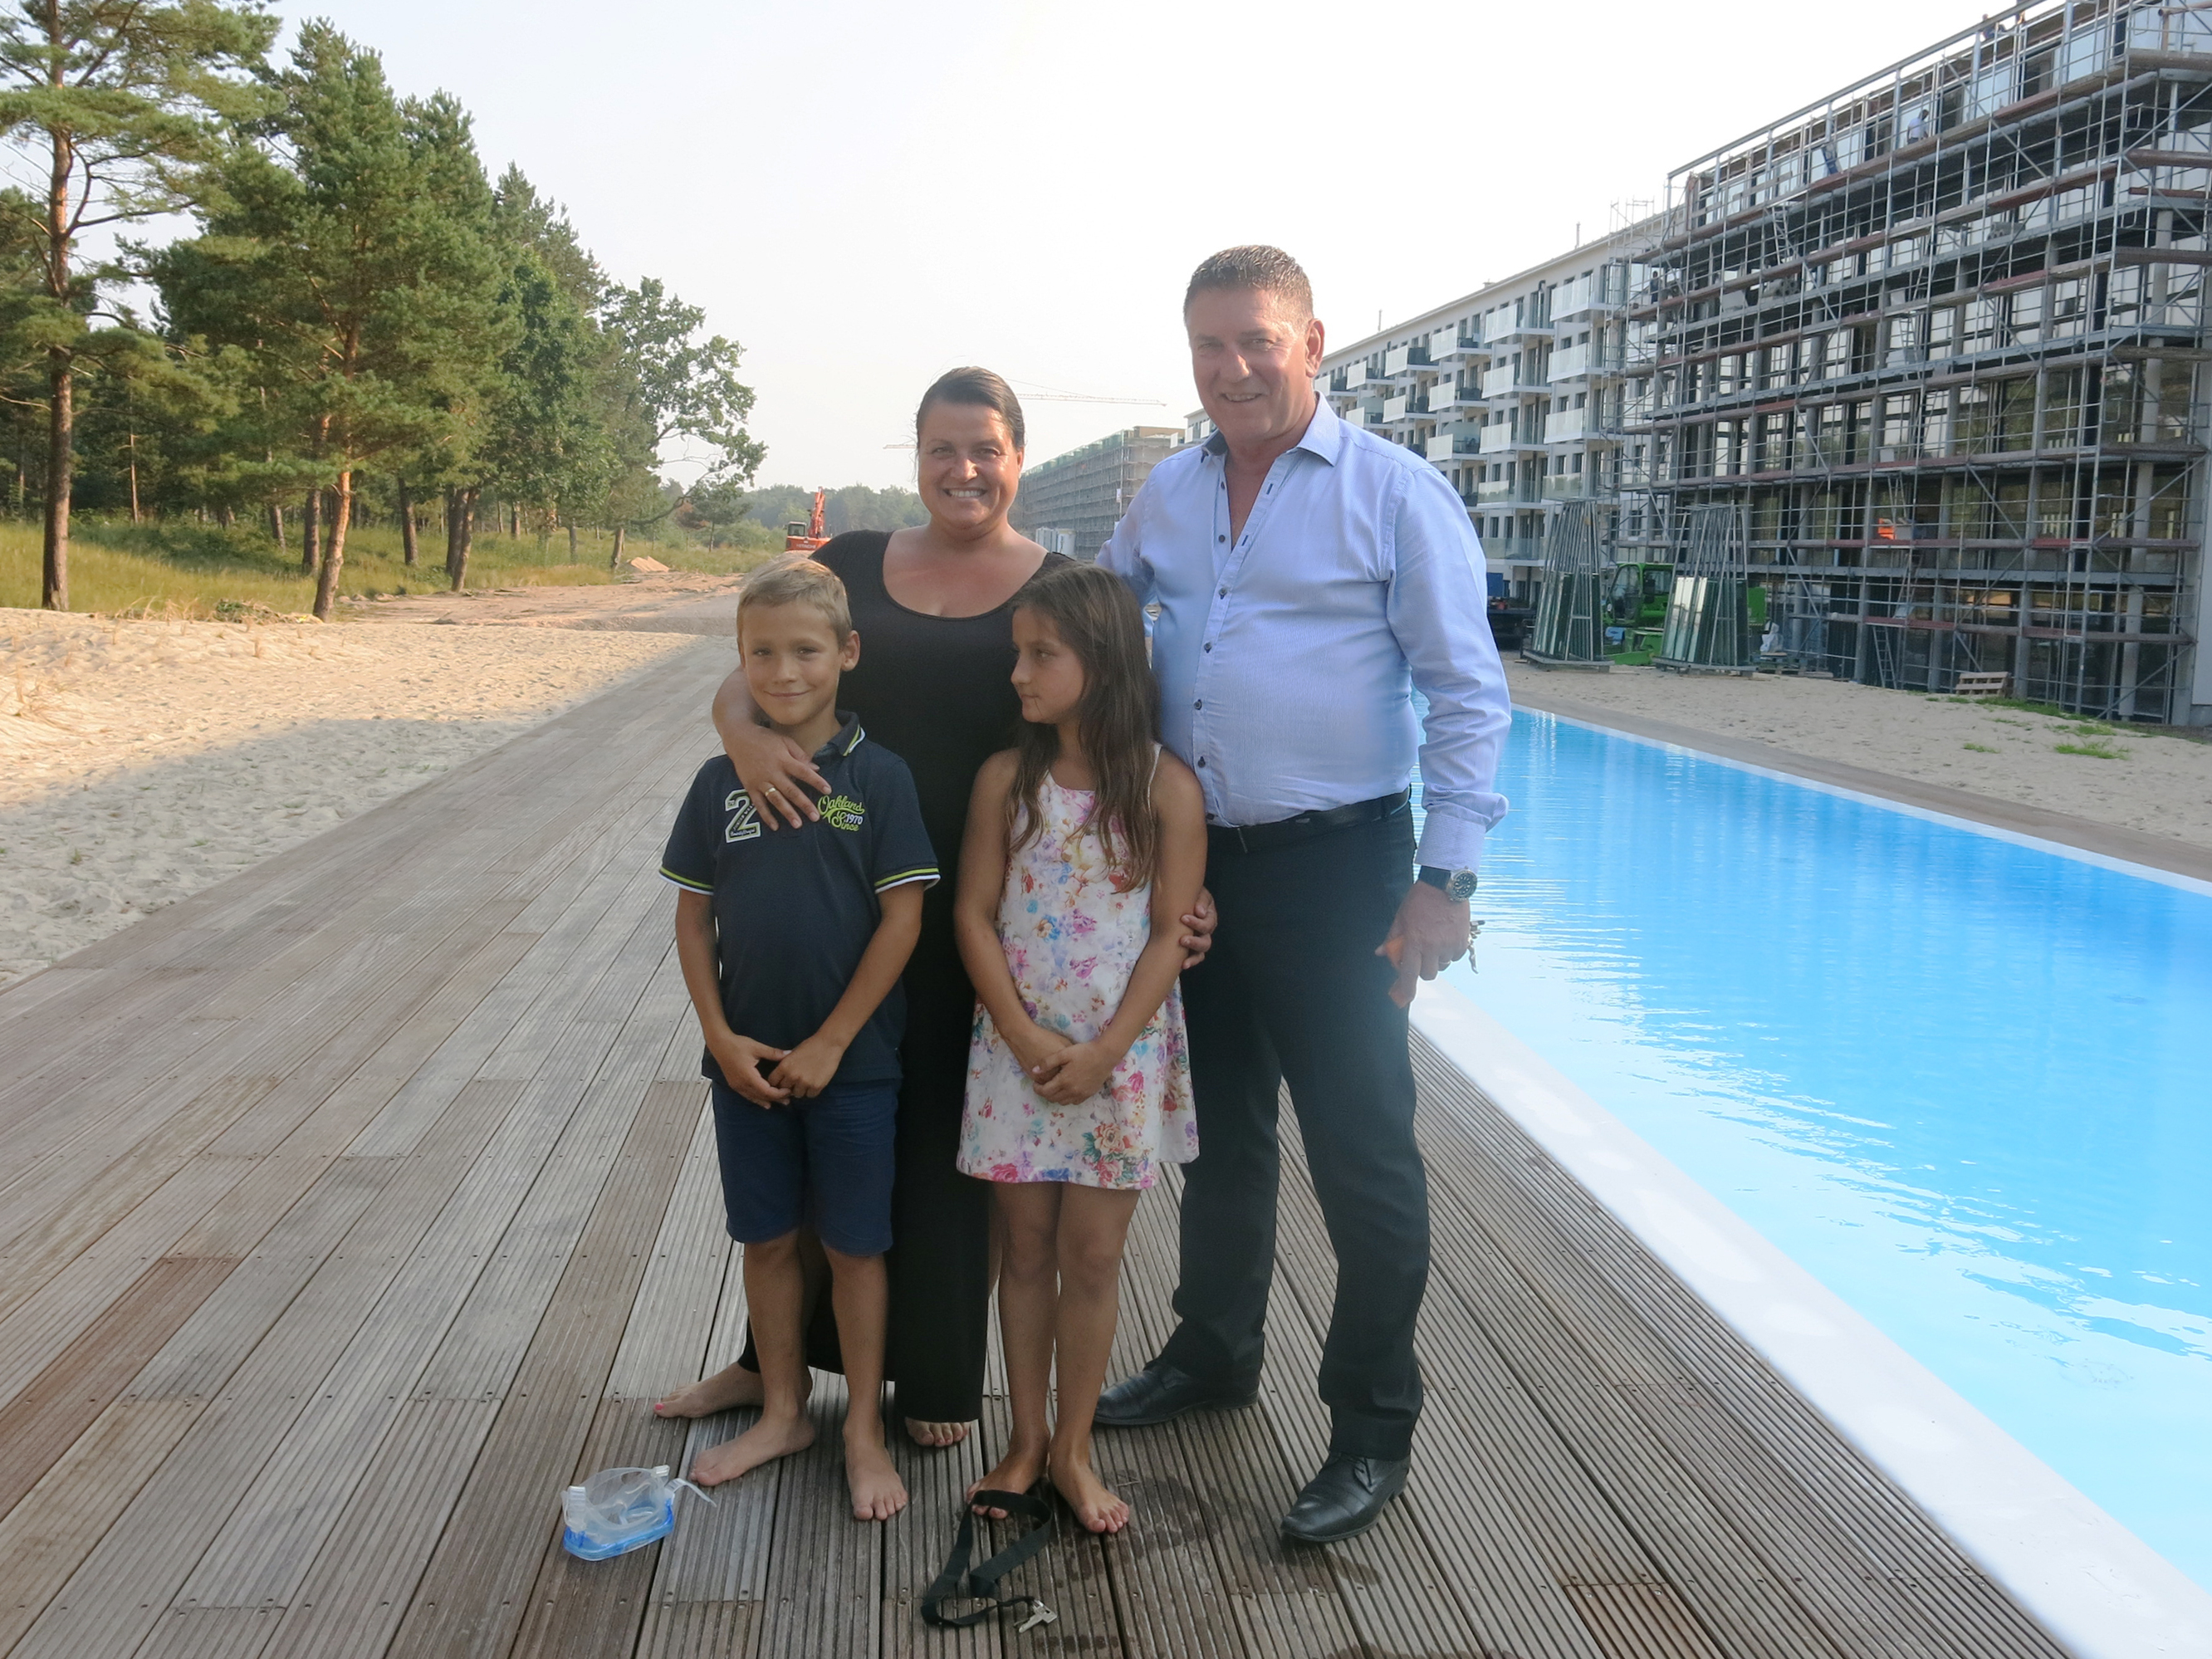 Peter and Yvett Sadewasser and their 8-year-old twins, Alexander and Josefina, were among the first families to move into one of the refurbished units. Soraya Sarhaddi Nelson/NPR